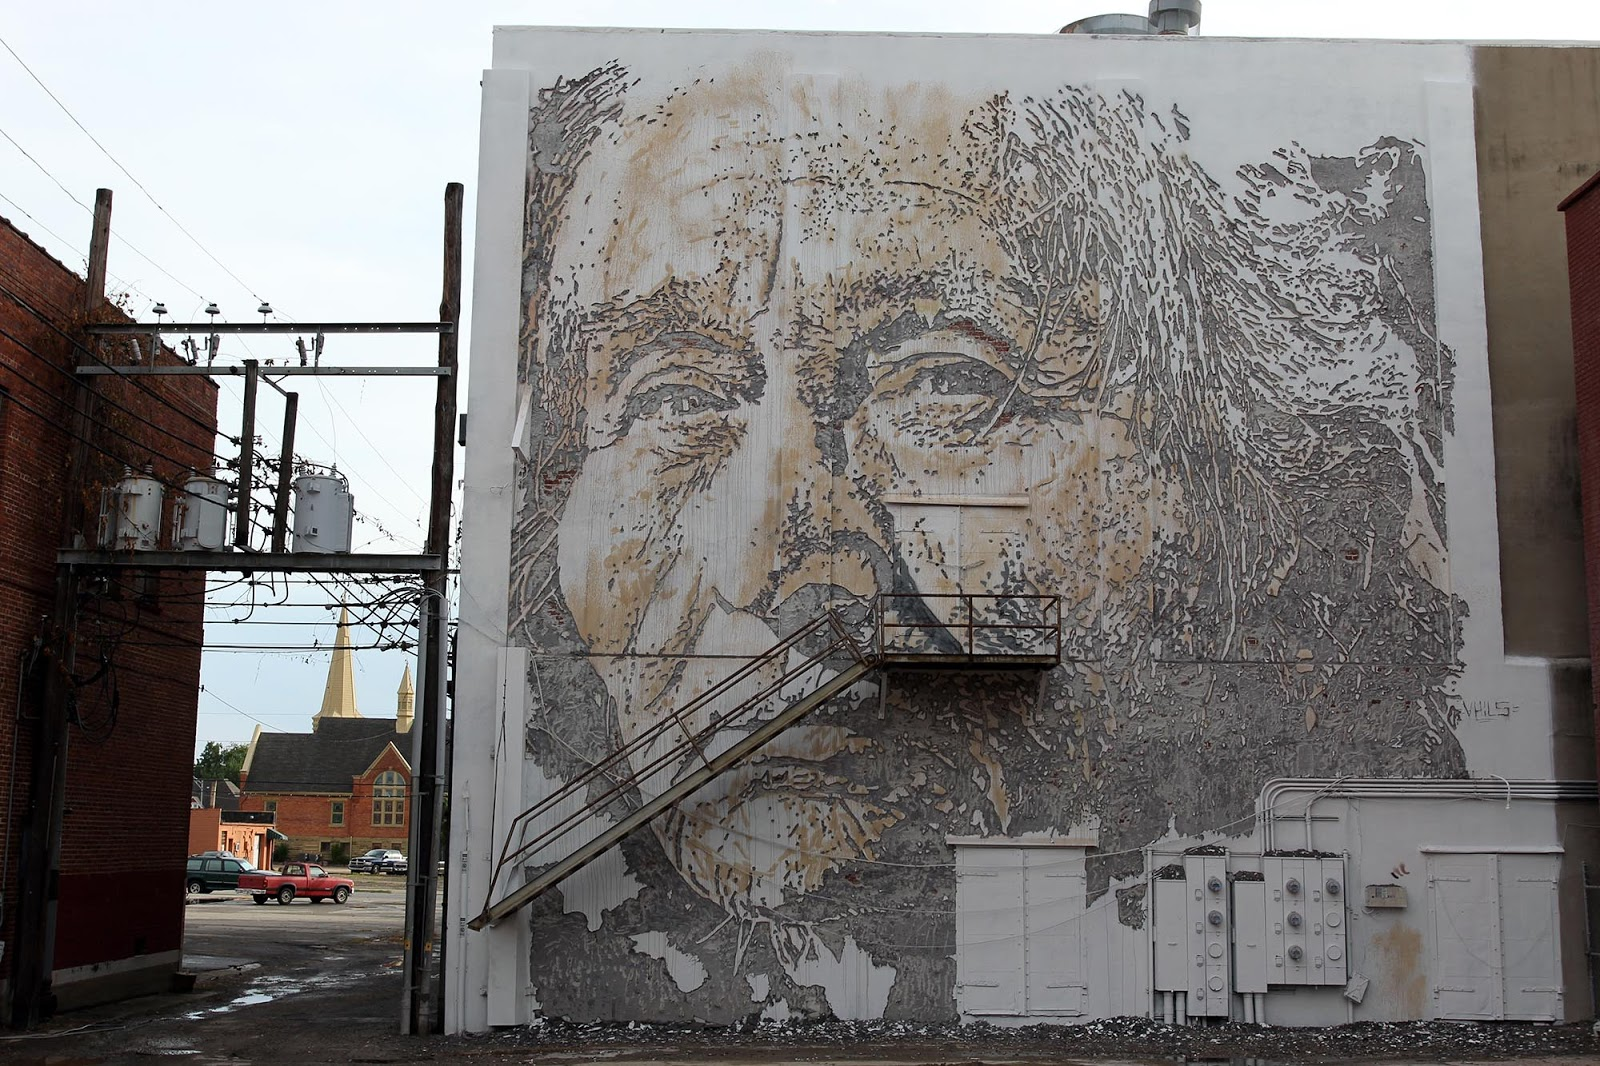 Nice Unexpected u Vhils unveils a new mural in Fort Smith Arkansas